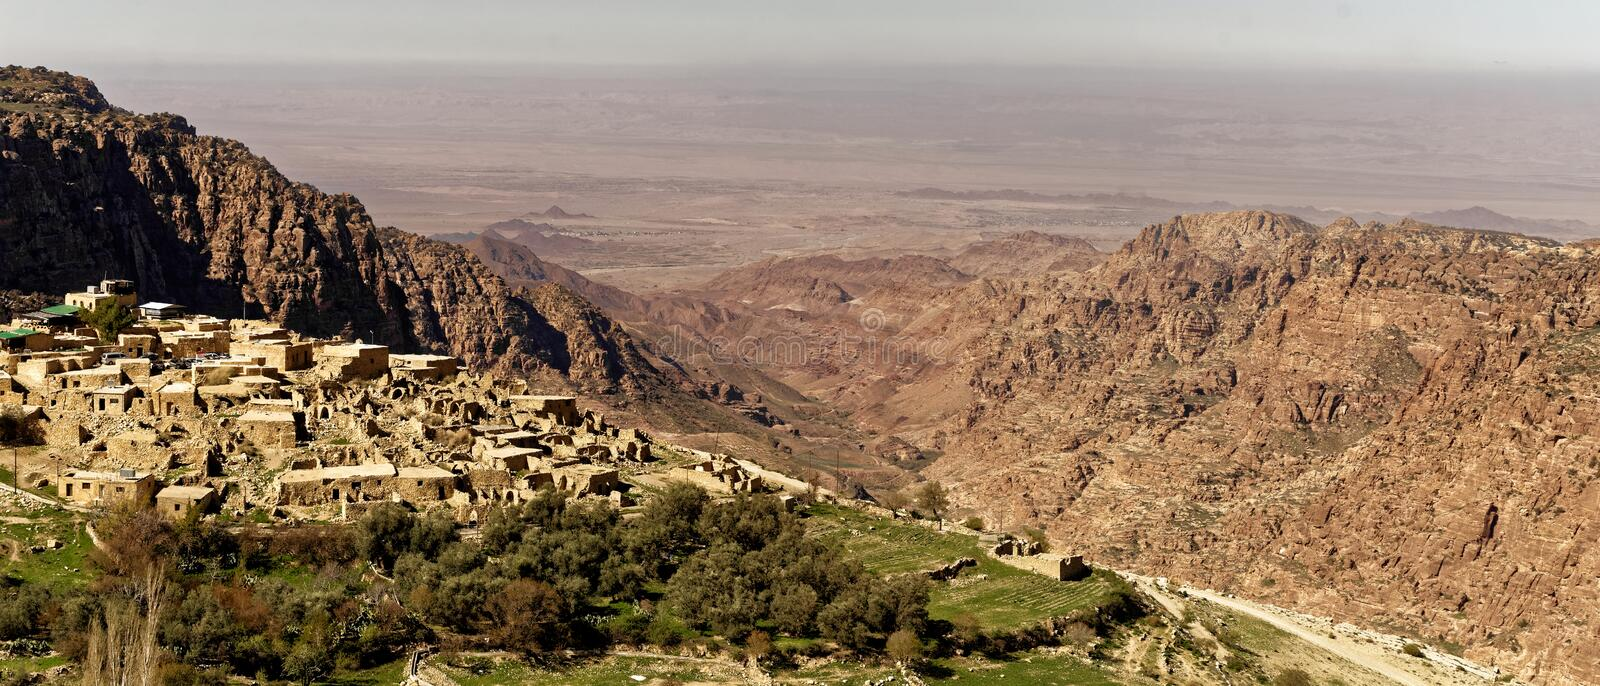 The village of Dana on the edge of the Dana Reserve, a deep valley cut in the south-western mountainous region of the Kingdom of J. Ordan, panoramic view, middle stock photography